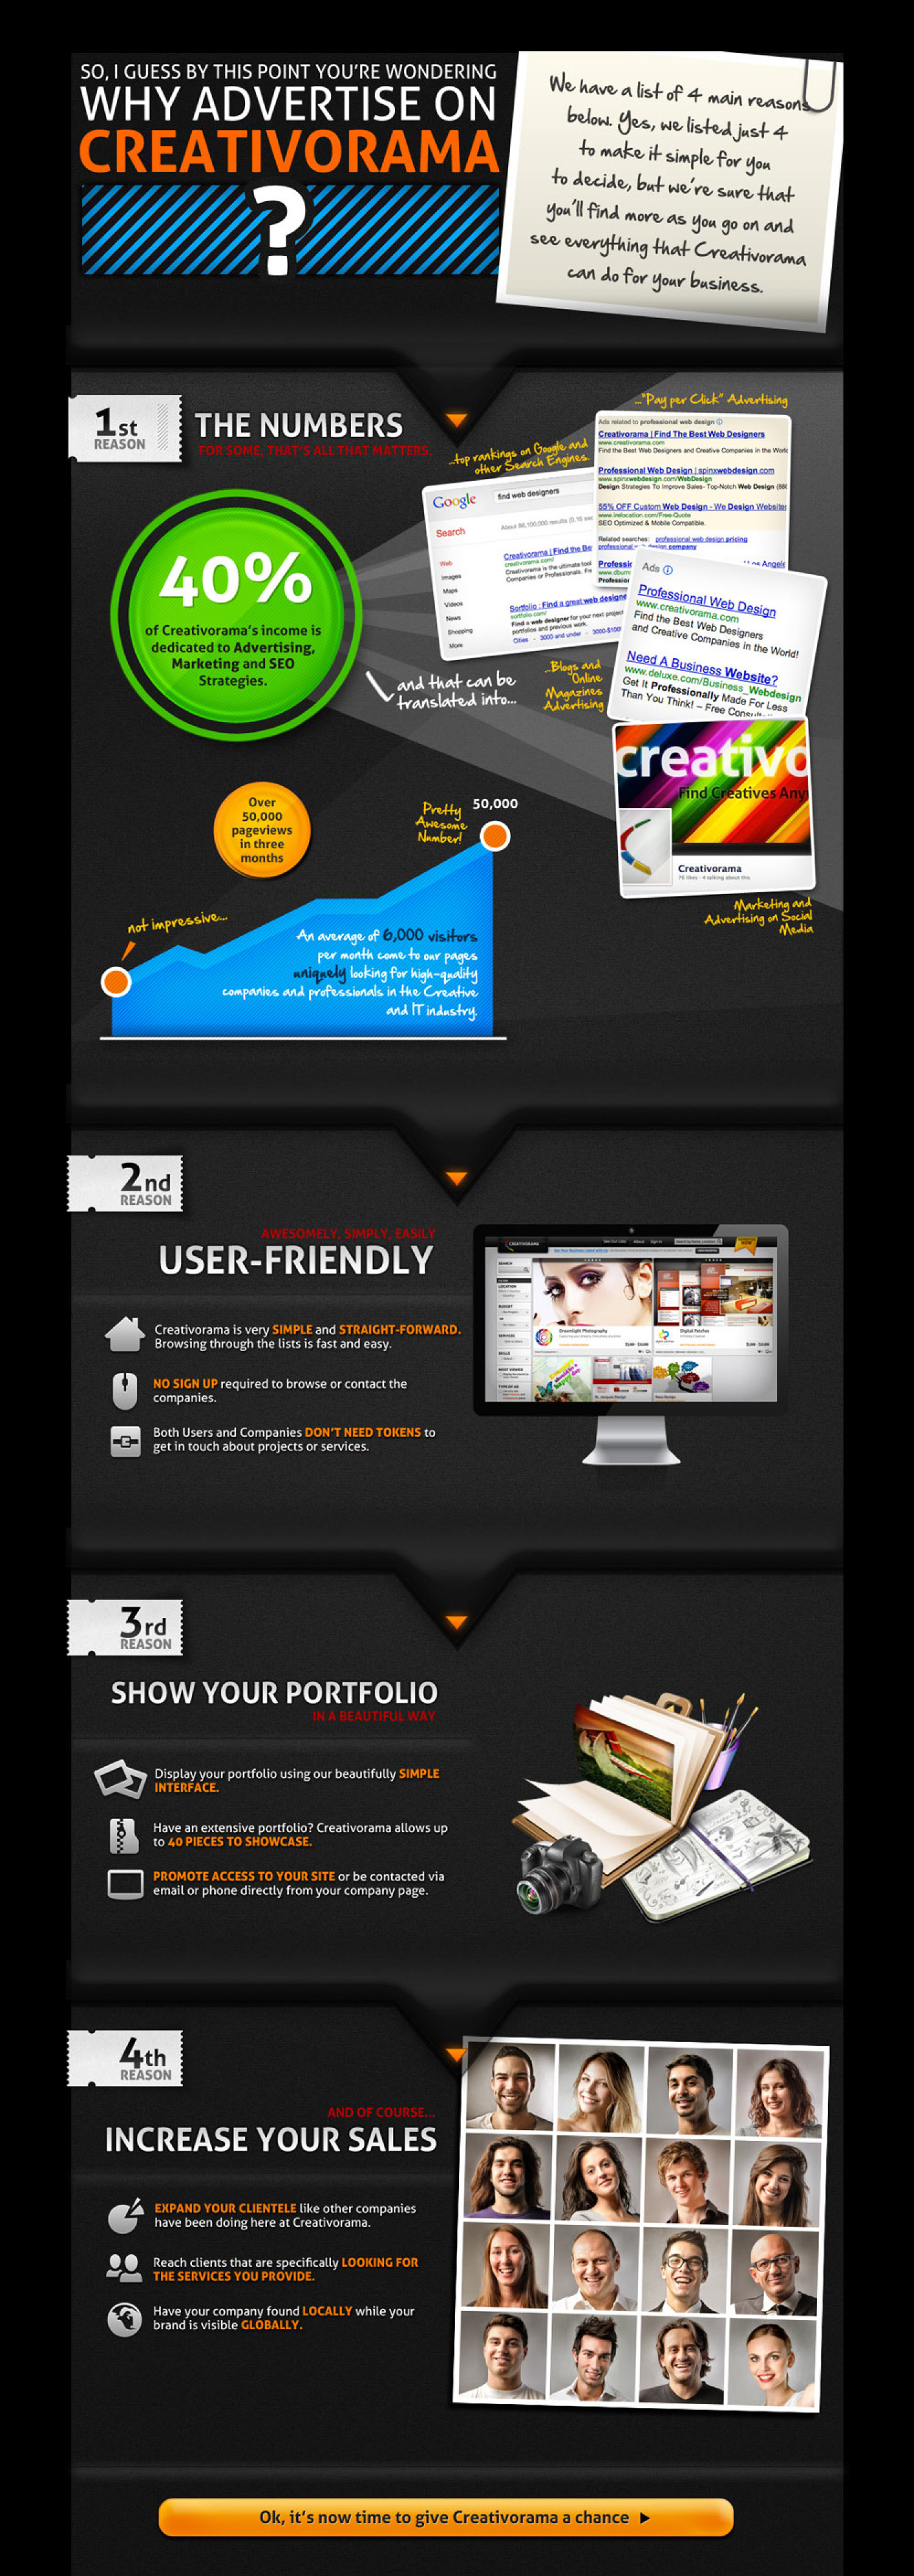 Why Advertise on Creativorama Infographic